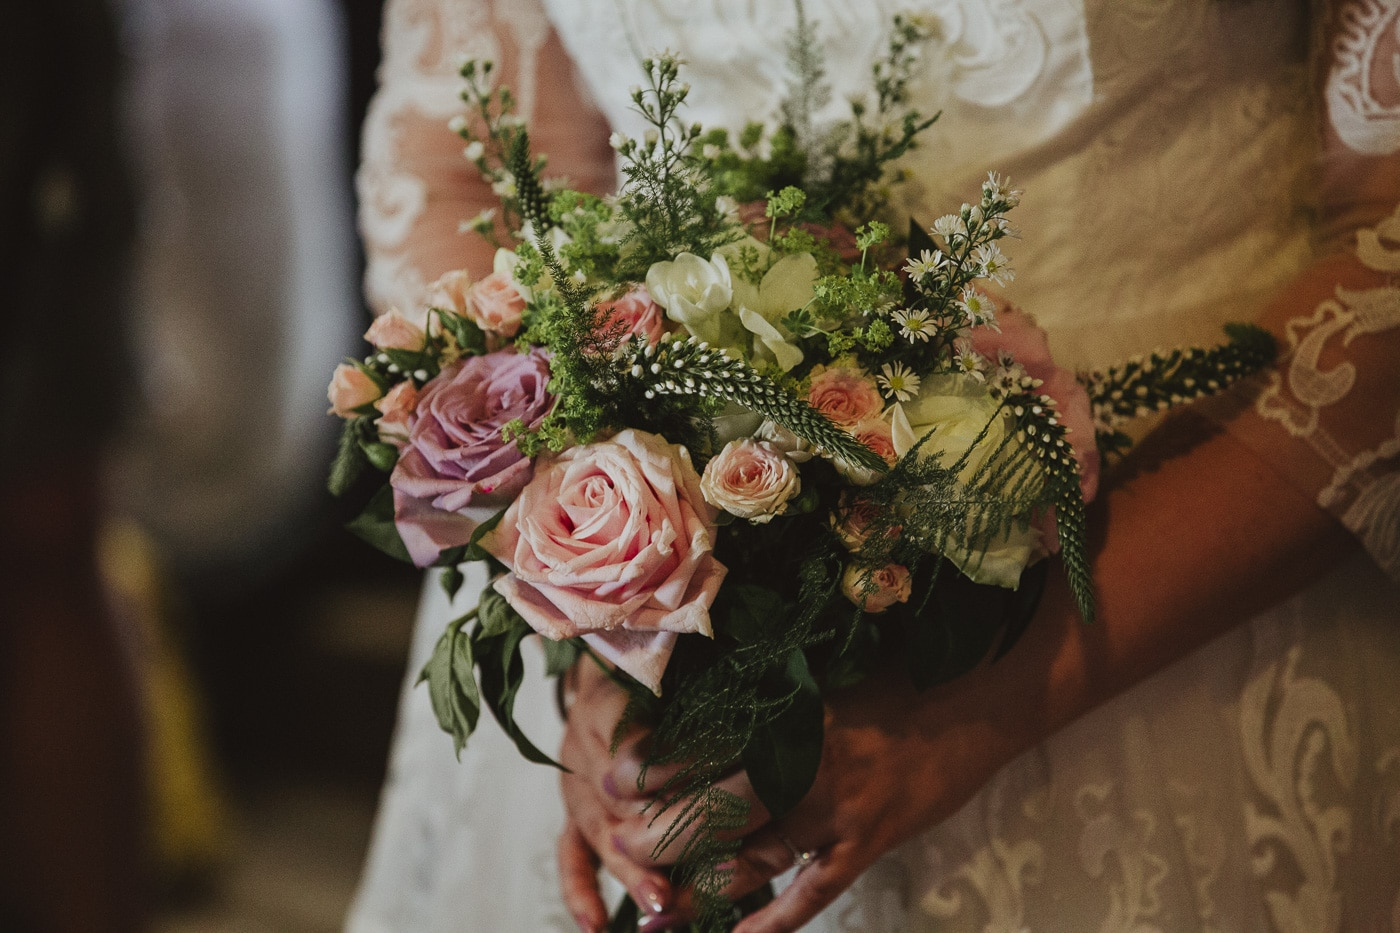 Brides bouquet of flowers taken by wedding photographer Joshua Wyborn